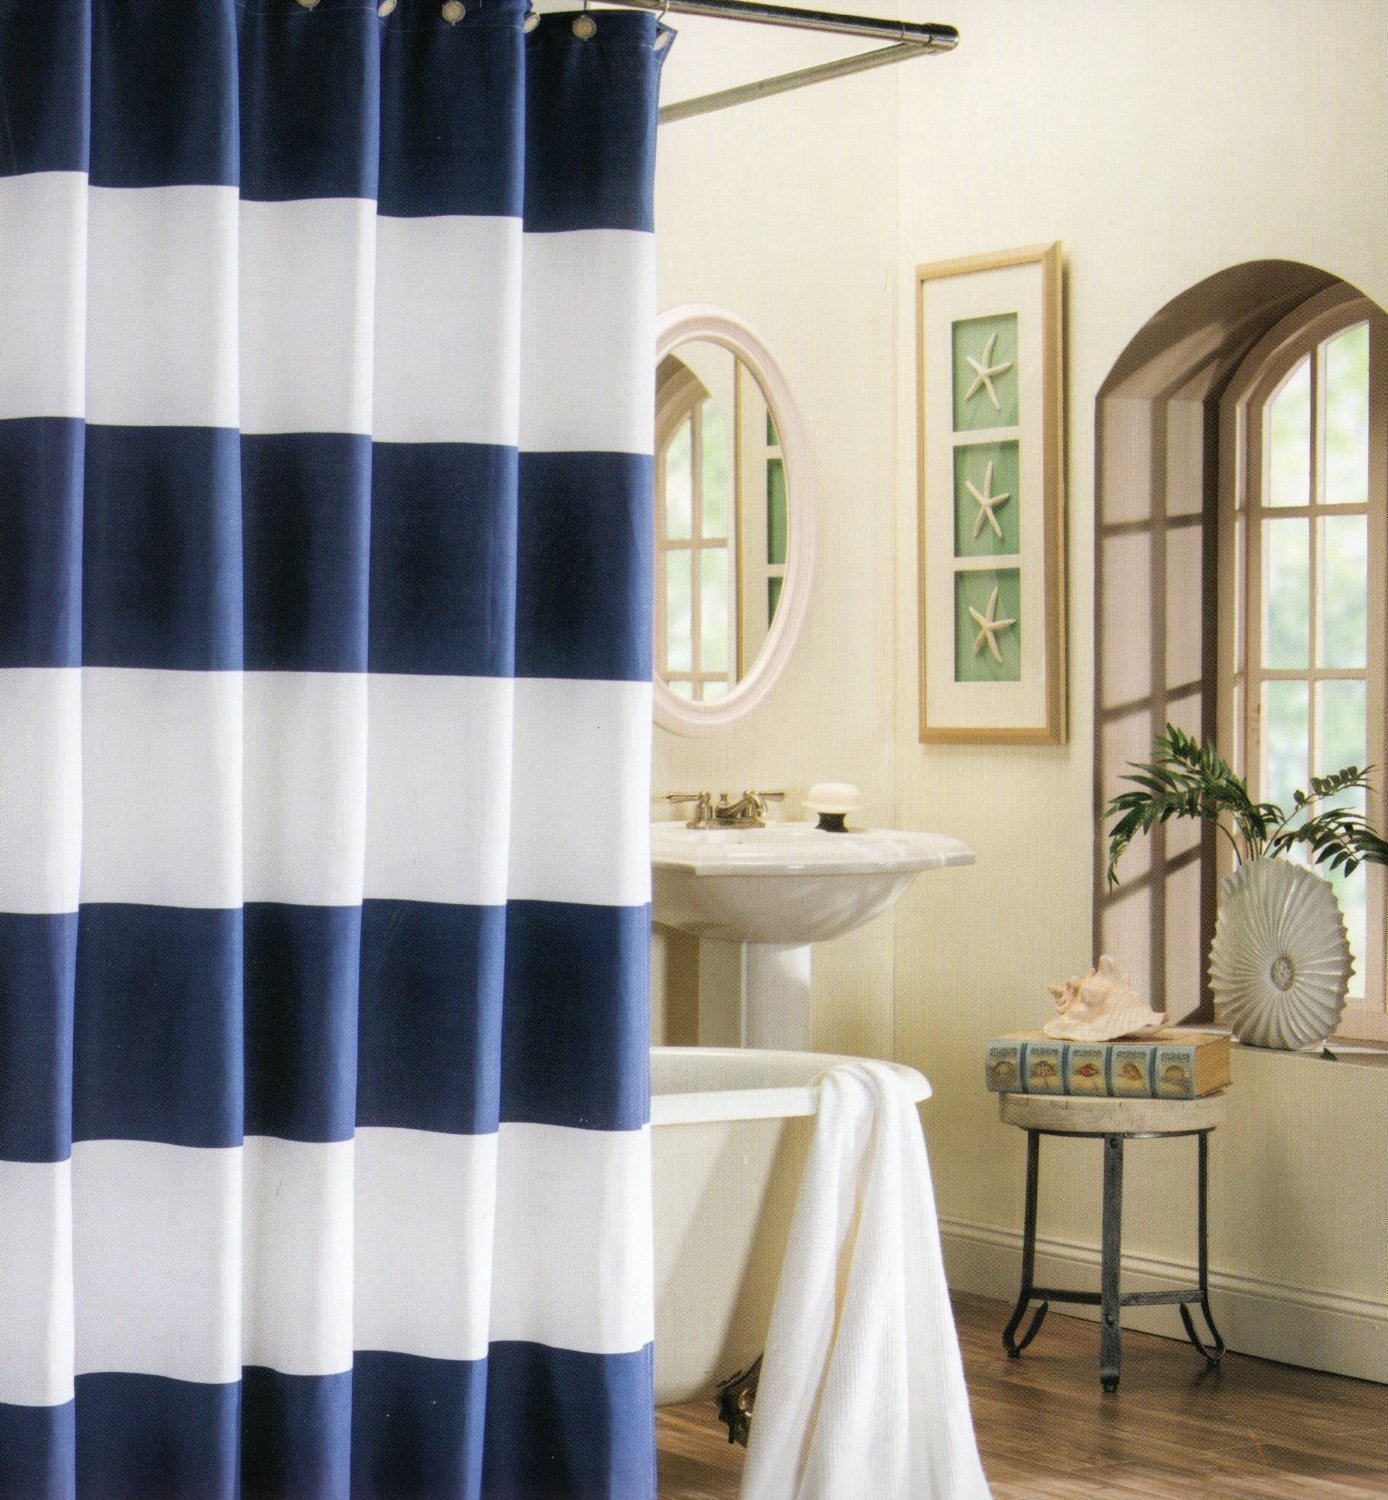 Cheap Navy Blue Shower Curtain Find Navy Blue Shower Curtain Deals On Line At Alibaba Com